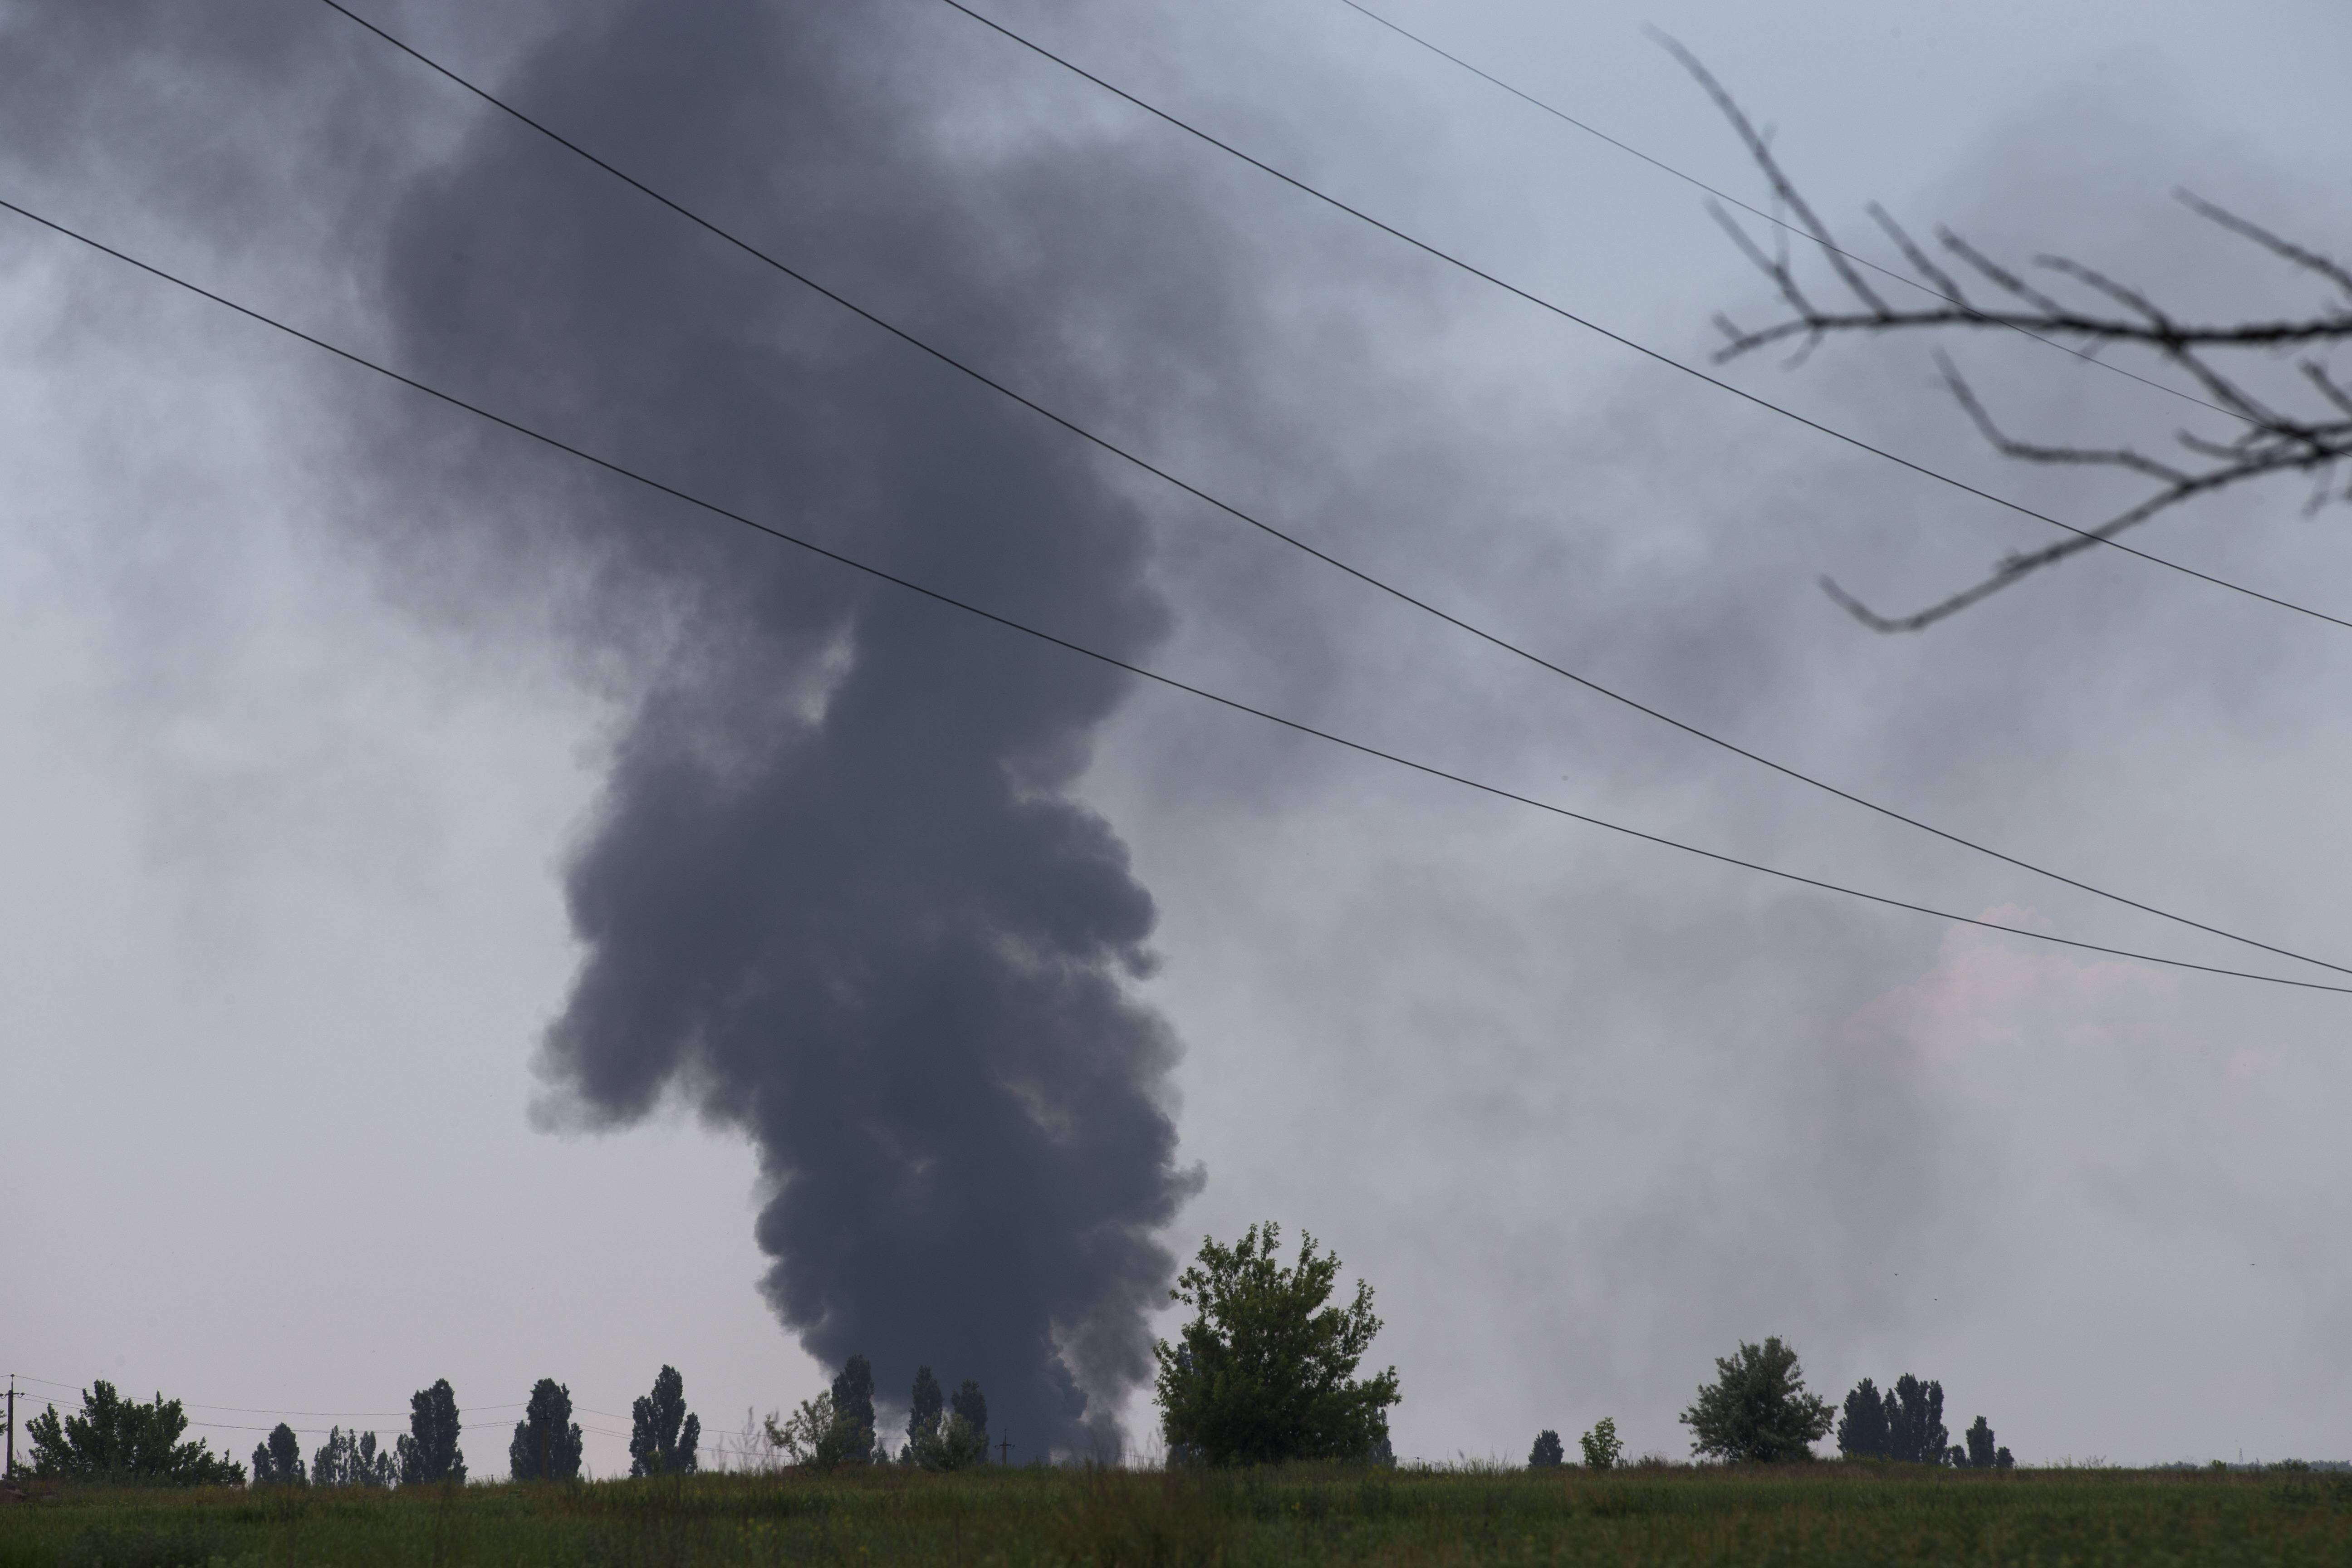 Rebels in eastern Ukraine shot down a government military helicopter Thursday amid heavy fighting around the eastern city of Slovyansk, killing 12 soldiers including a general, Ukraine's leader said.